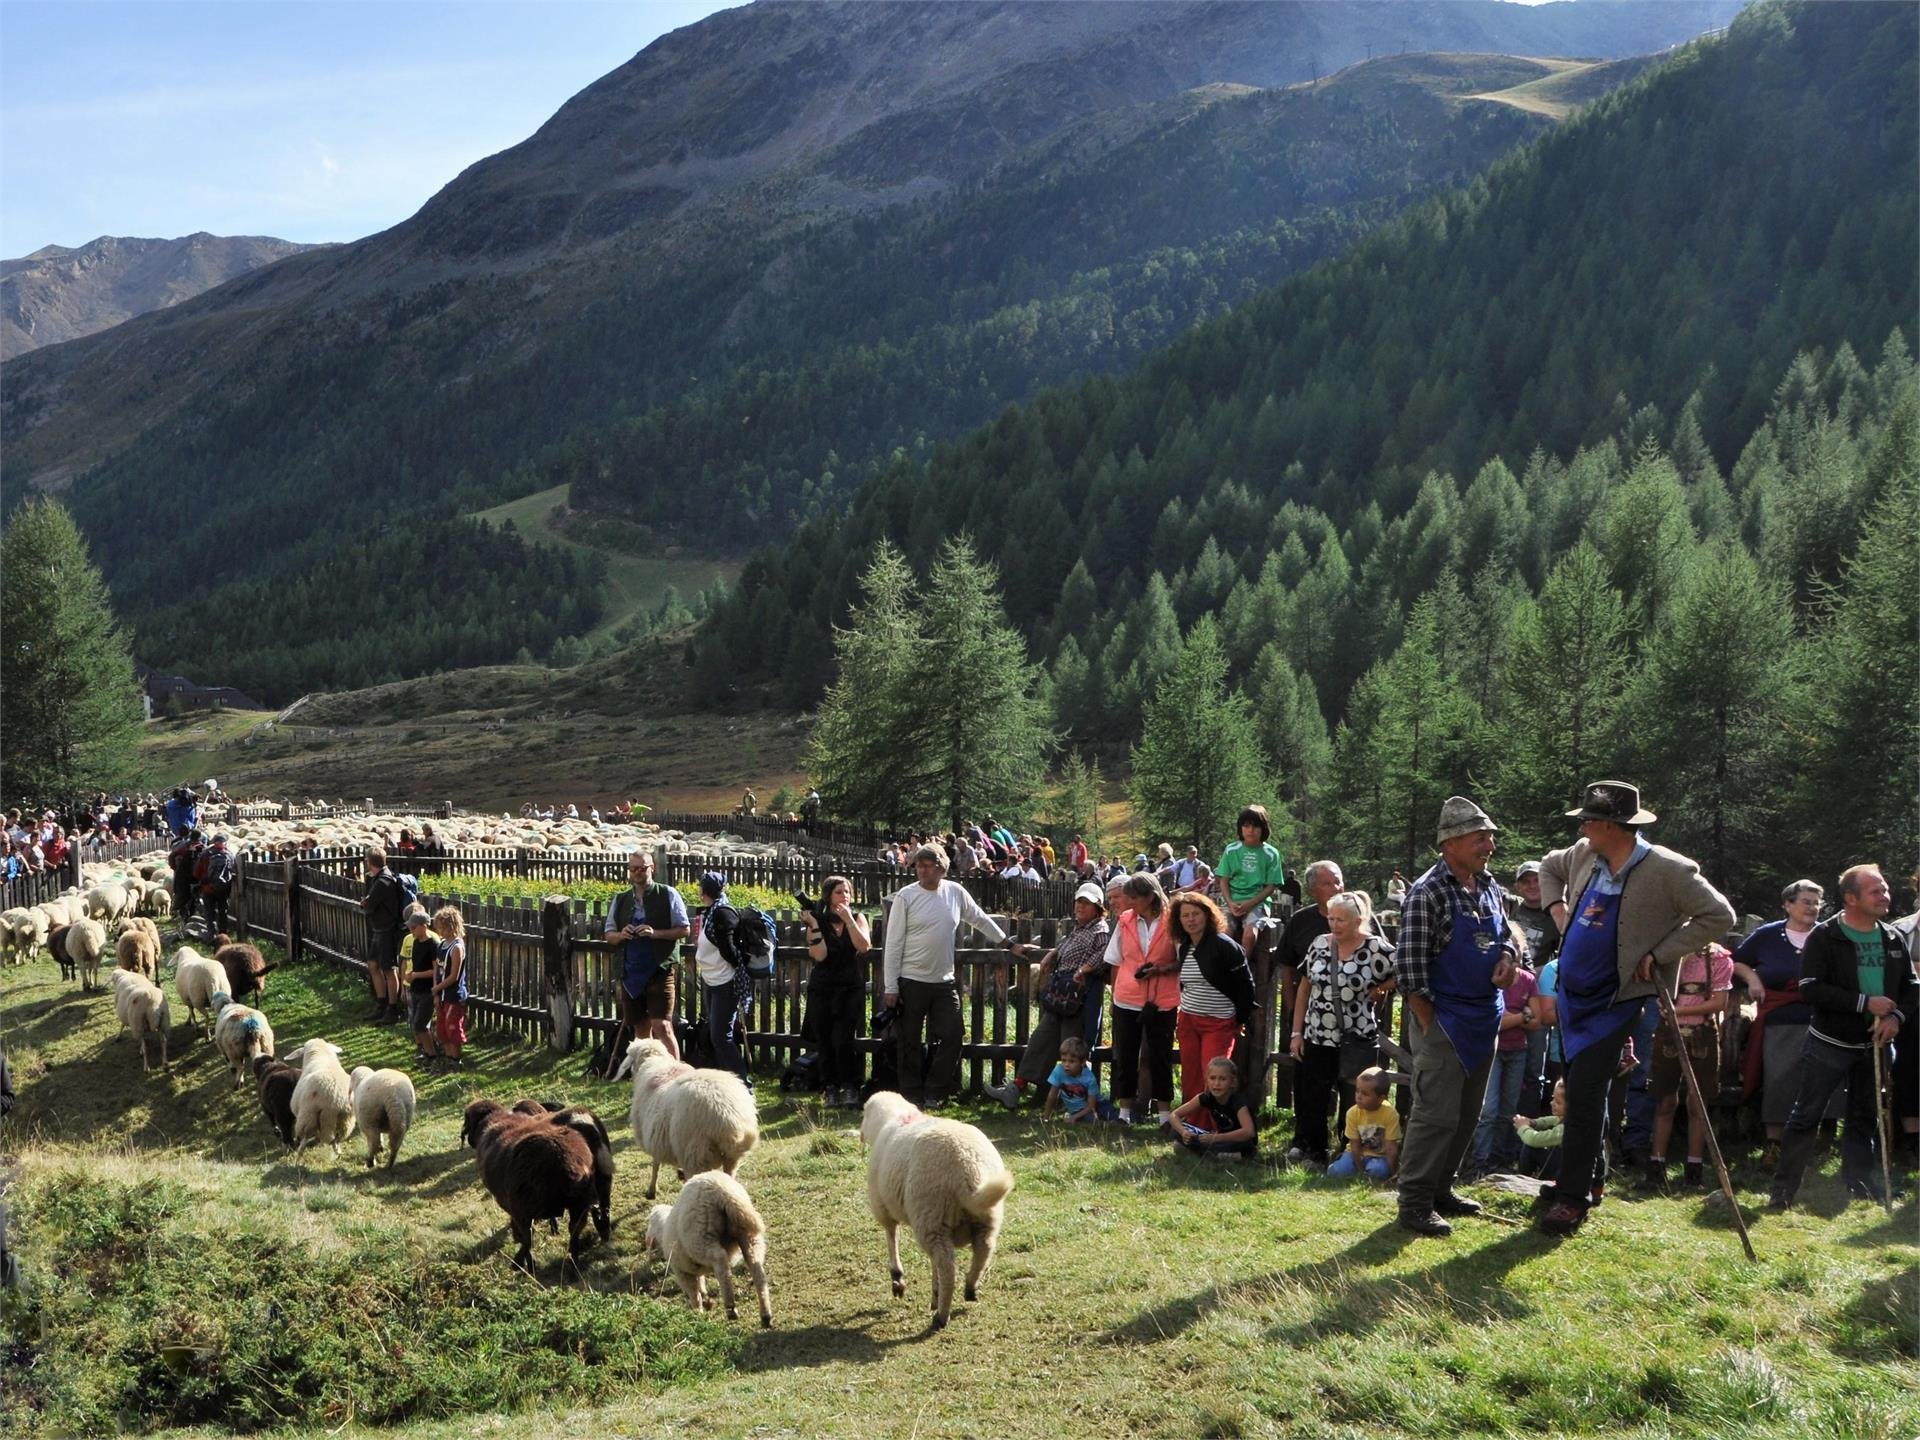 Sheep herding with shepherd festival in Maso Corto/Val Senales